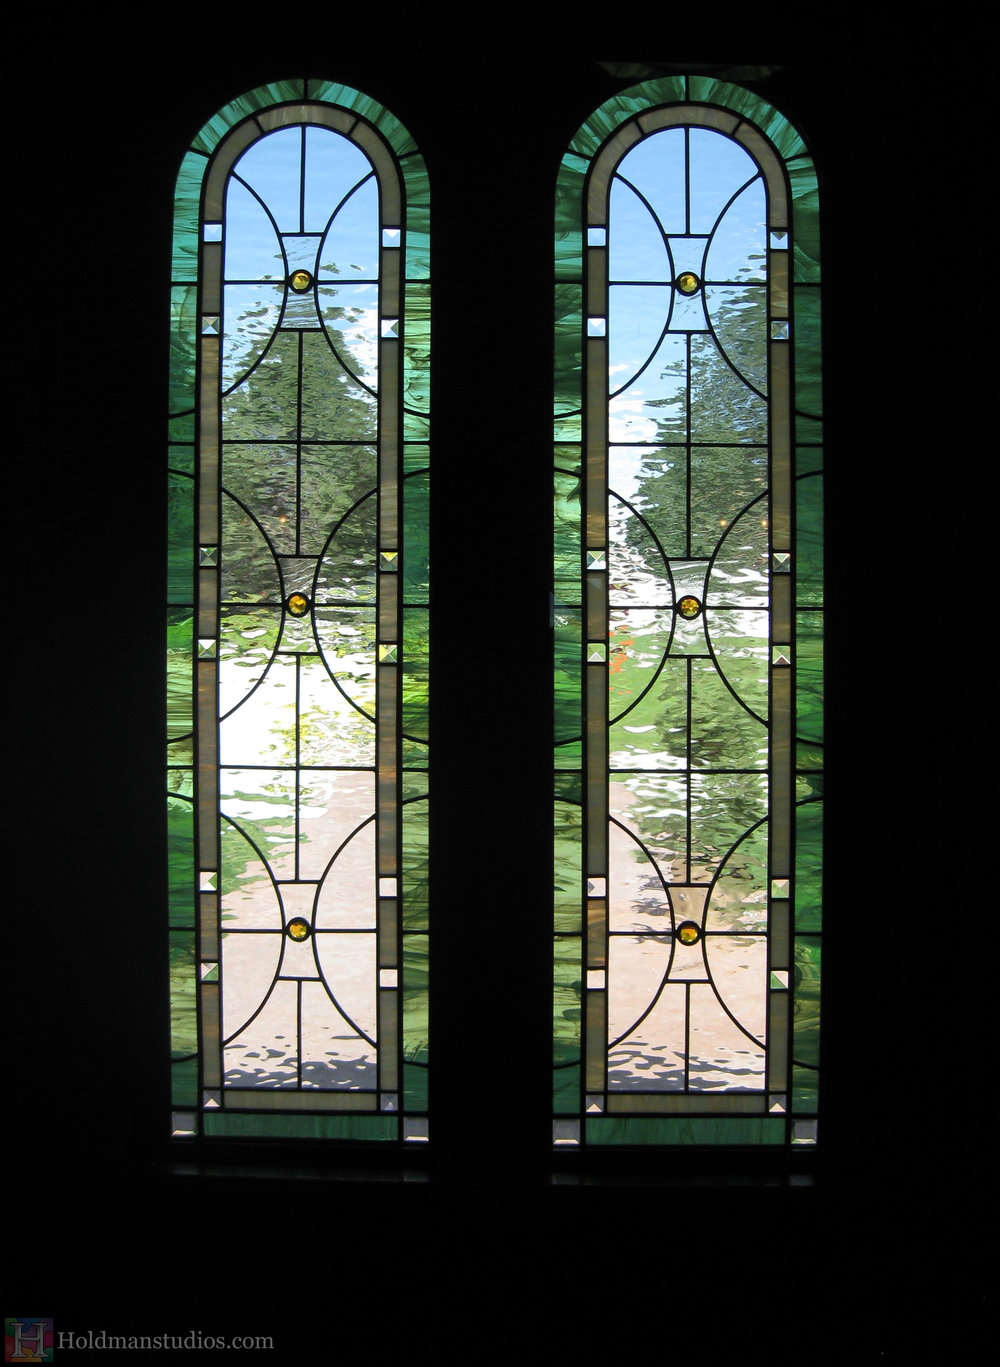 Holdman-studios-stained-glass-front-door-windows-utah-valley-university-alumni-house.jpg